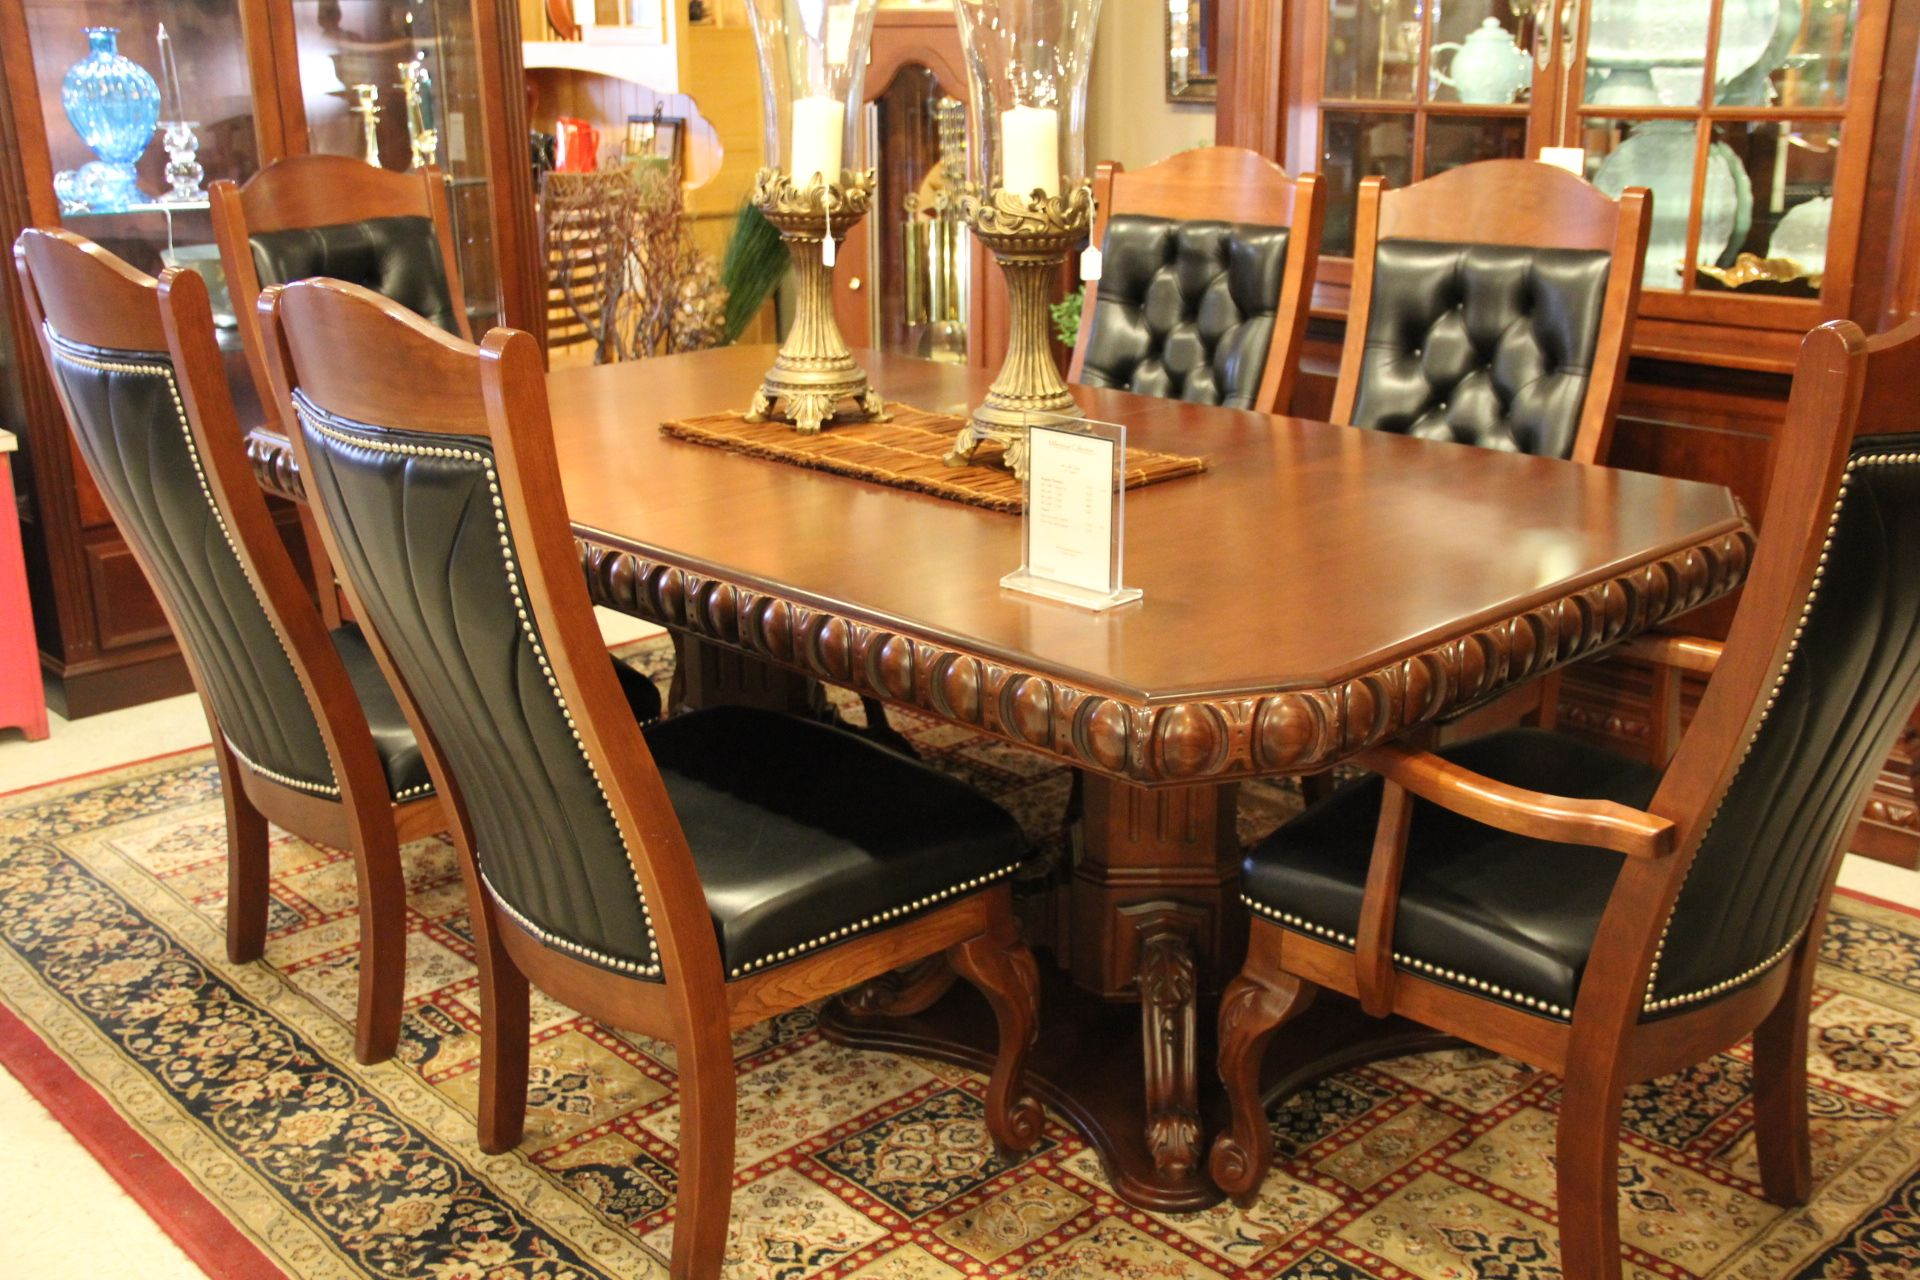 Look At This Elegant Solid Wood Dining Room Set #shopgf Adorable Dining Room Sets Solid Wood Decorating Inspiration